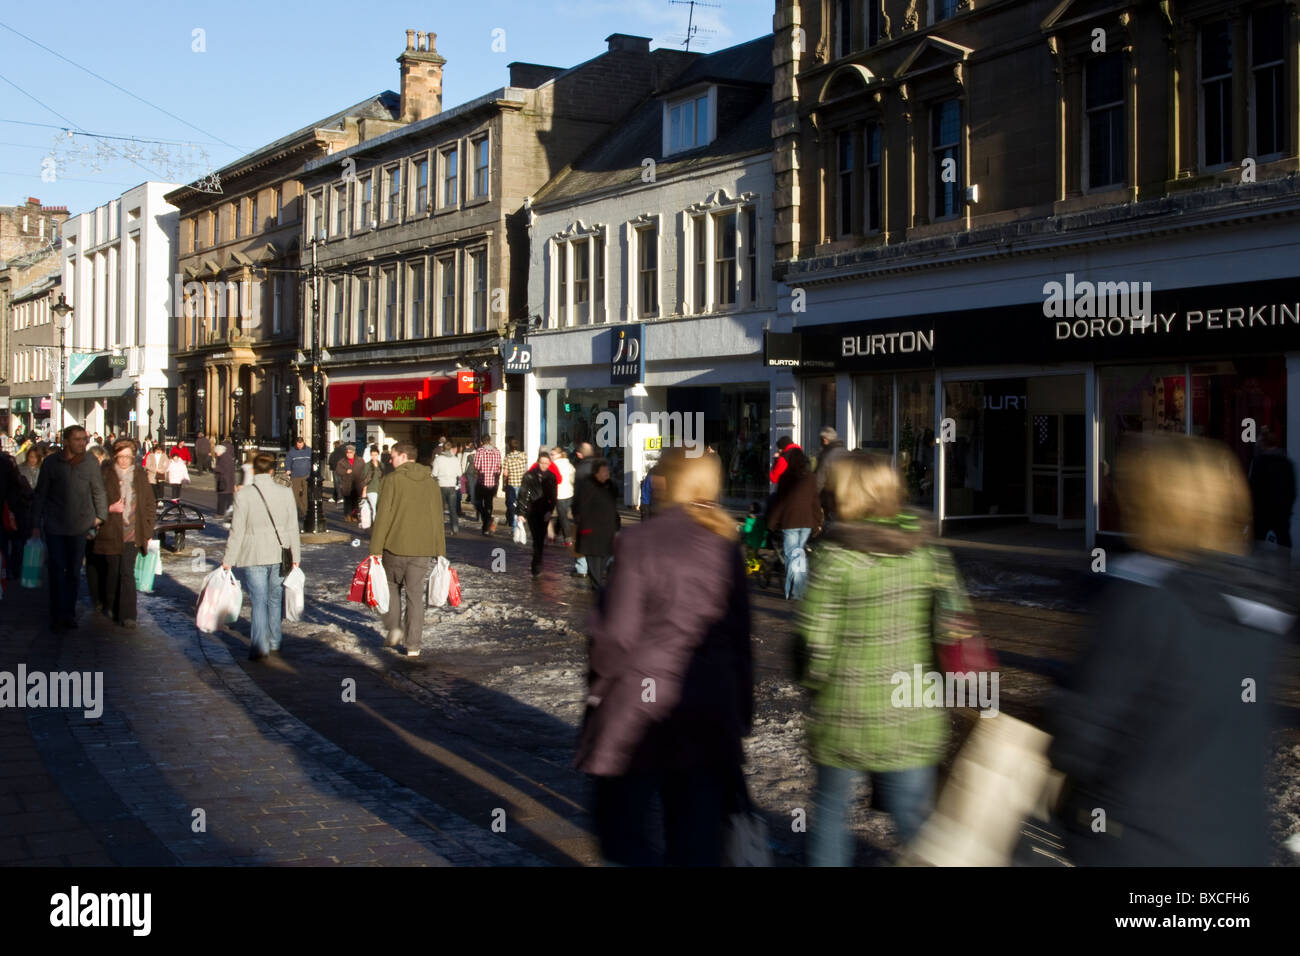 Christmas Shoppers, & crowds or people in the busy urban Main Streets of Dundee City Centre, Tayside,  Scotland, - Stock Image